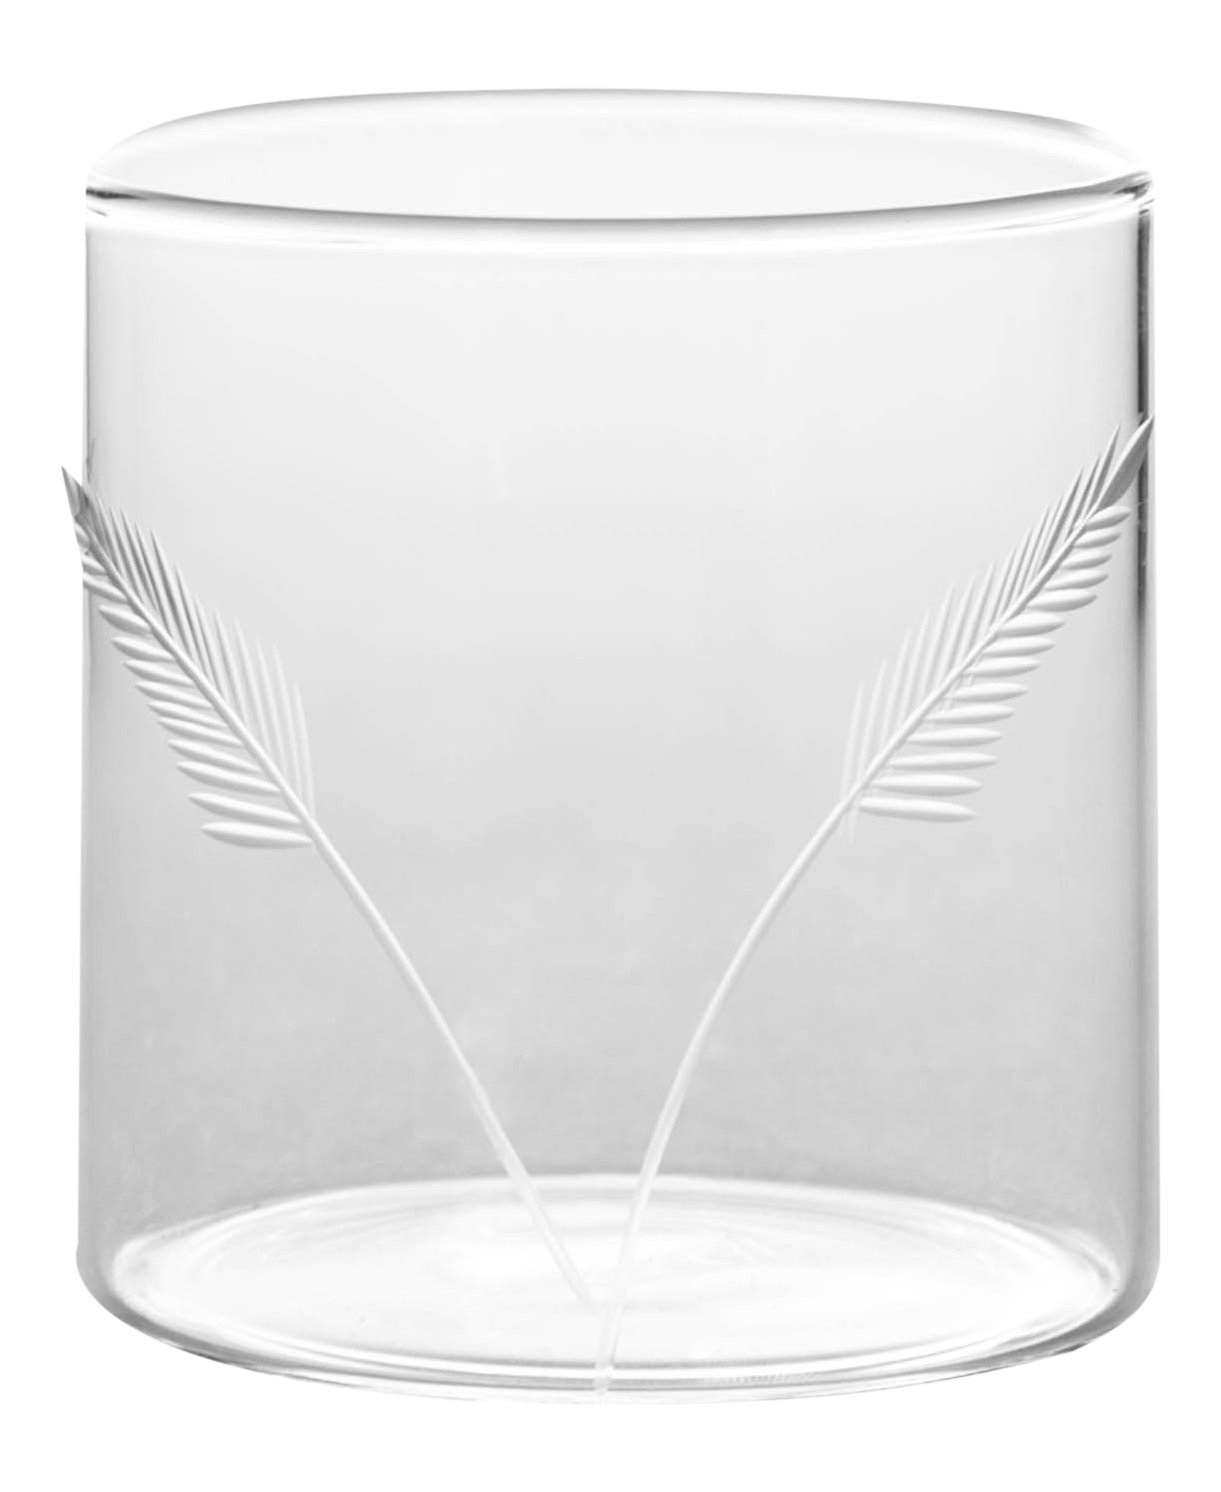 Borosil VDFT305 Vision Deco Fern Tumbler [Set of 6] - Clear Lightweight & Durable Drinkware, Odor Resistant, Dishwasher Safe - For Water, Juice, Beer, Wine, and Cocktails |10 Ounce Cups by Borosil